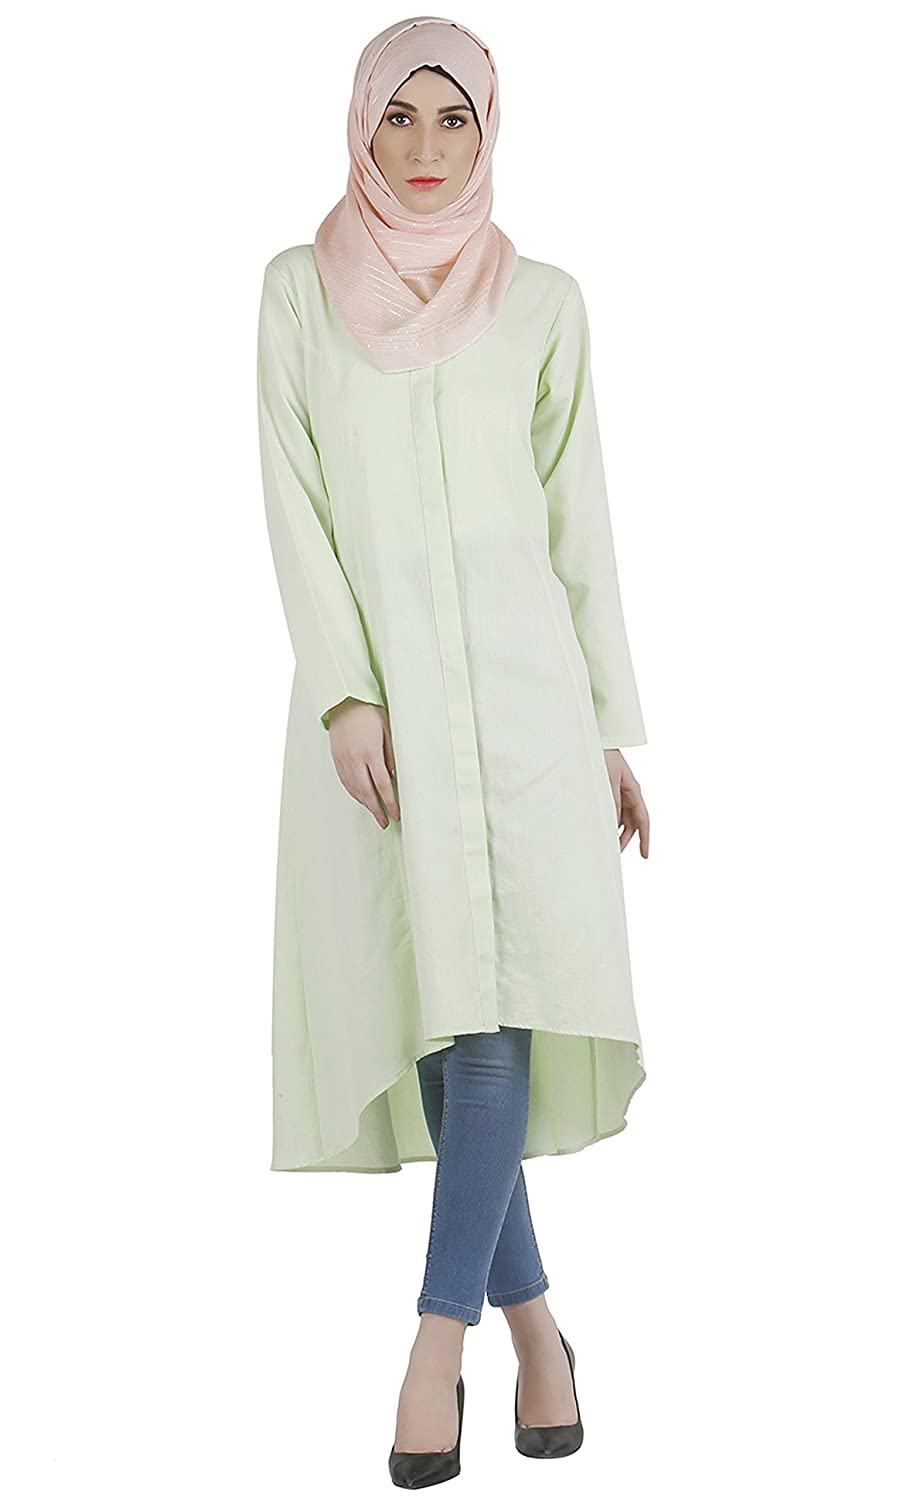 Modest Forever Lime green buttoned shirt dress modestforever